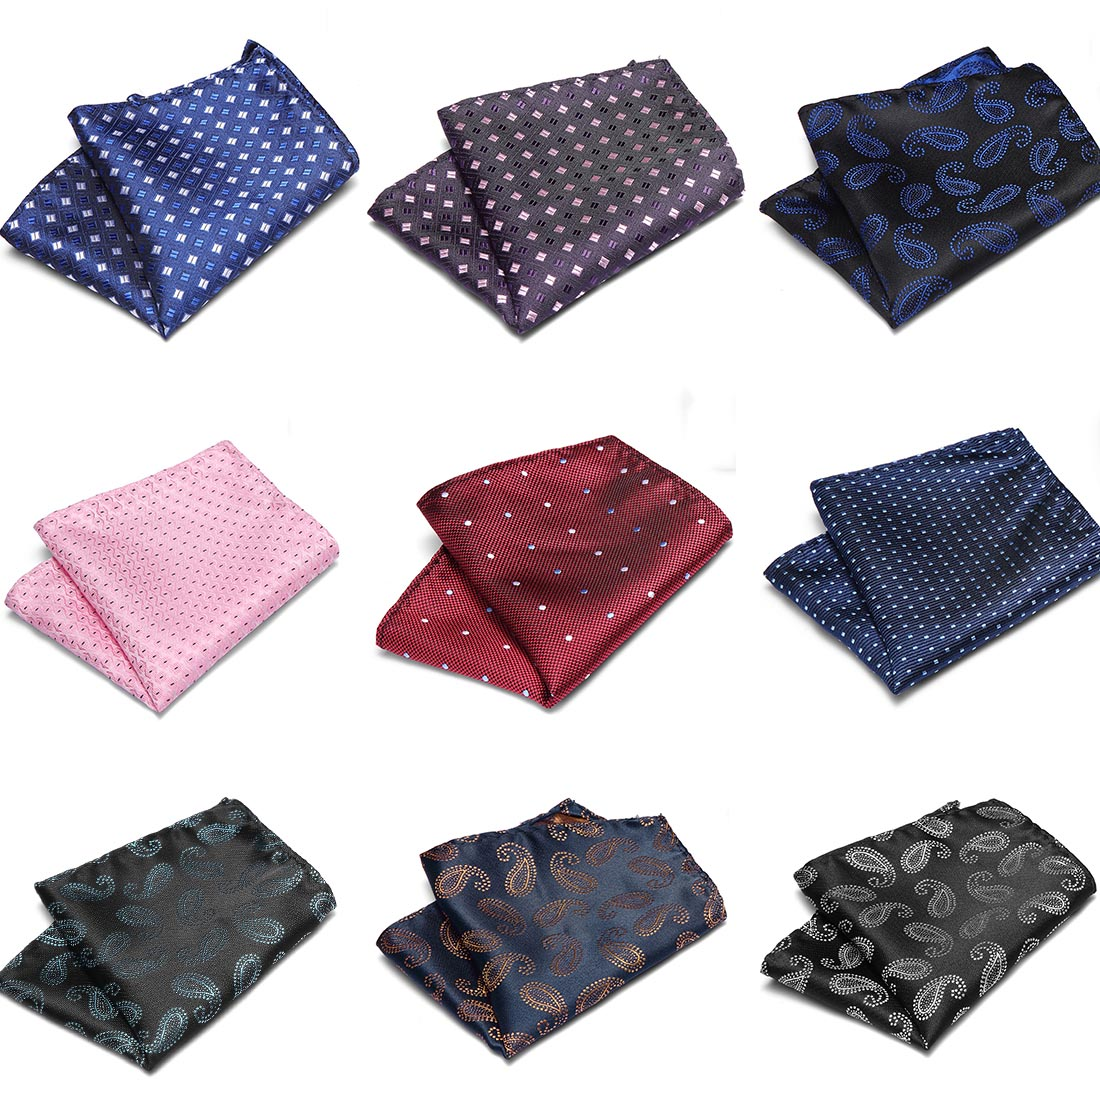 22x22cm   Hankerchief Pocket Squares  Luxury Mens Silk Touch Soft Hankies